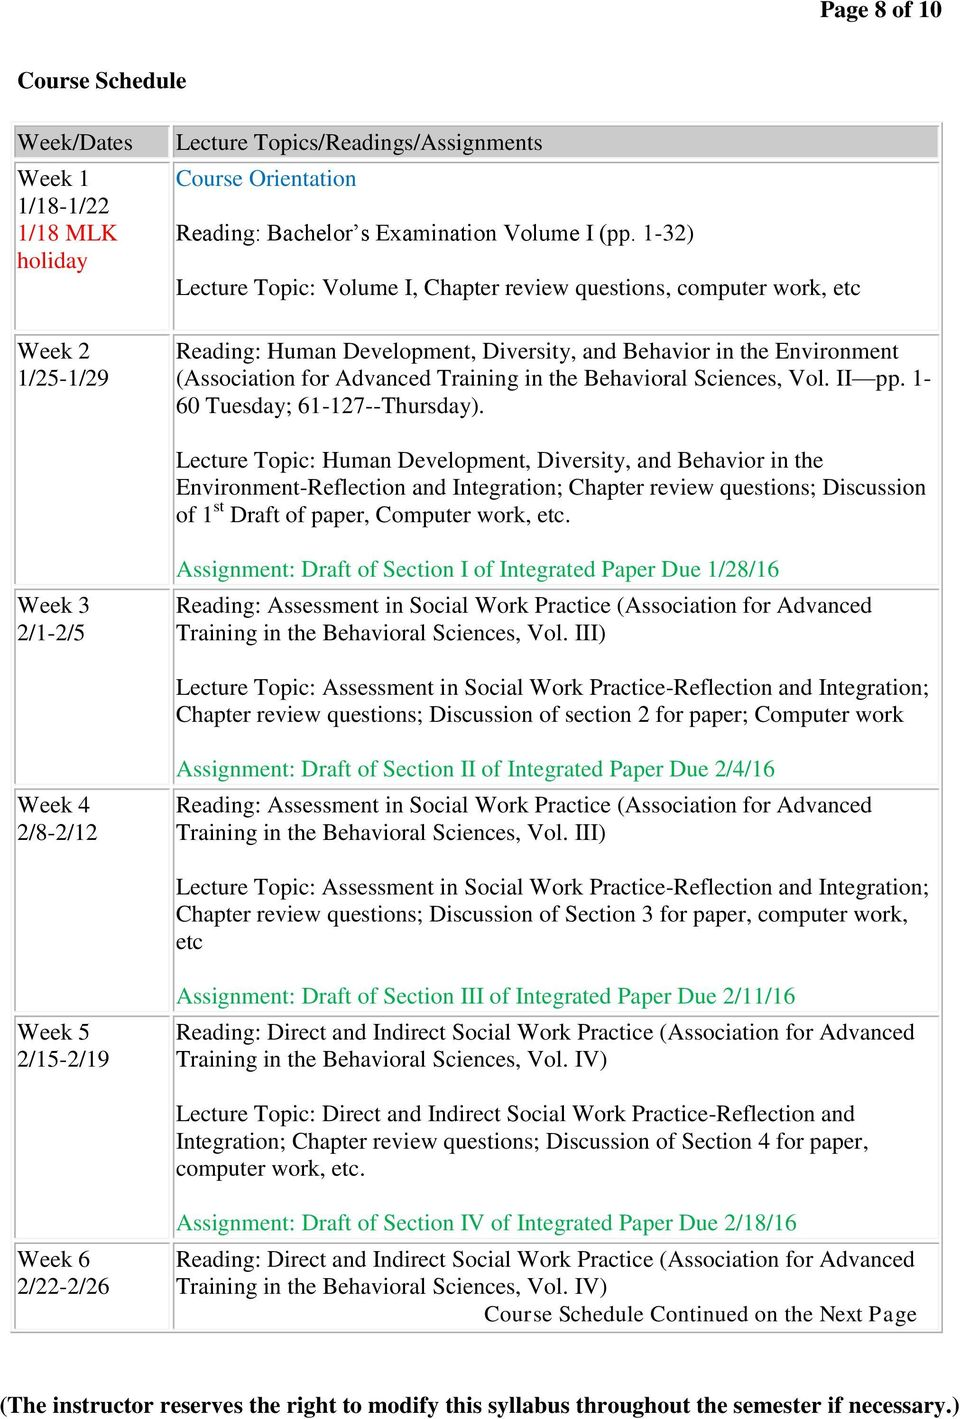 Sciences, Vol. II pp. 1-60 Tuesday; 61-127--Thursday).